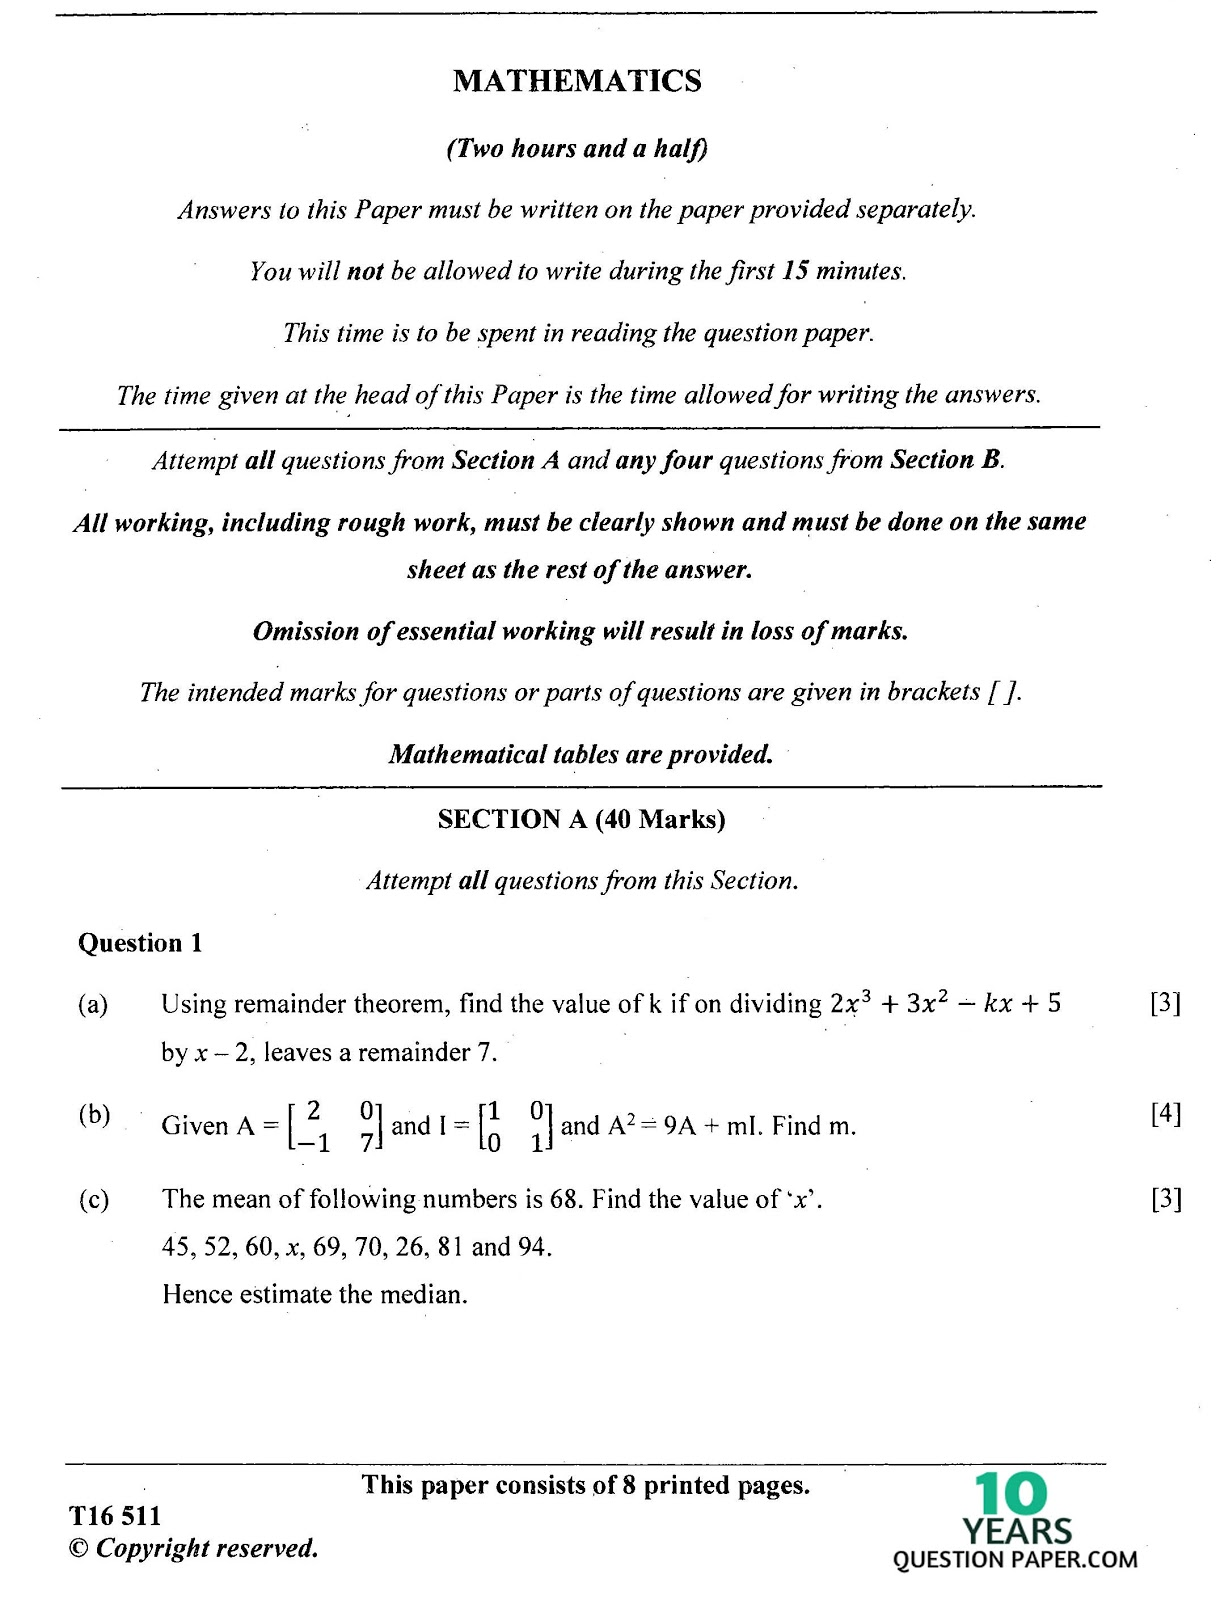 icse 2016 class 10th Mathematics question paper